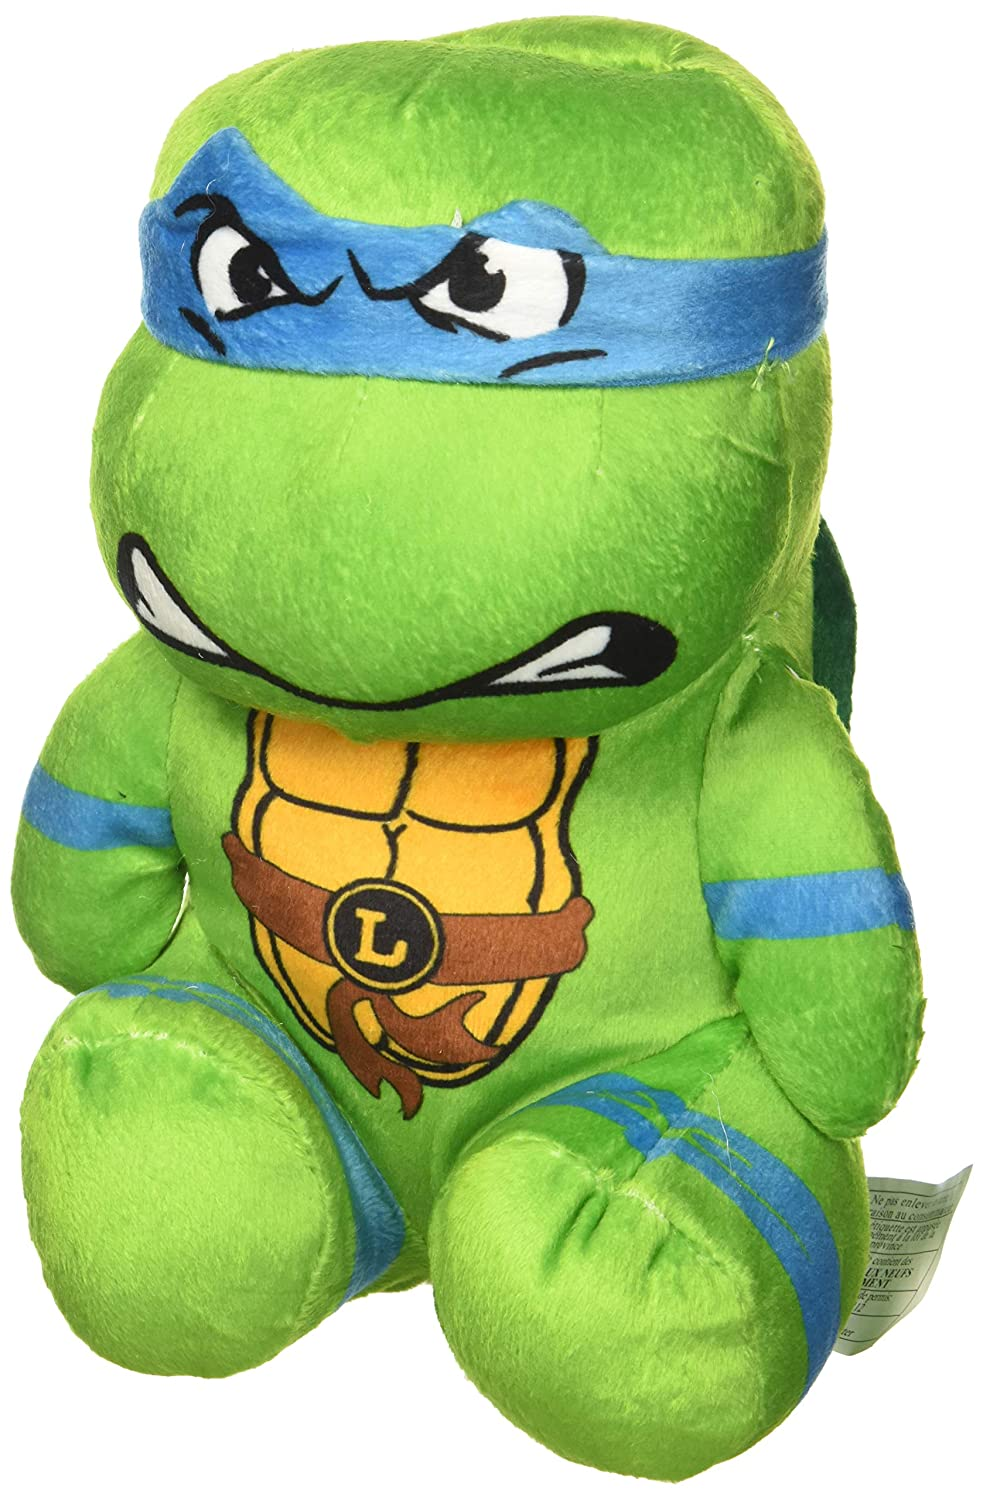 Teenage Mutant Ninja Turtles Plush Bank by FAB Starpoint   B01I3UWS9O